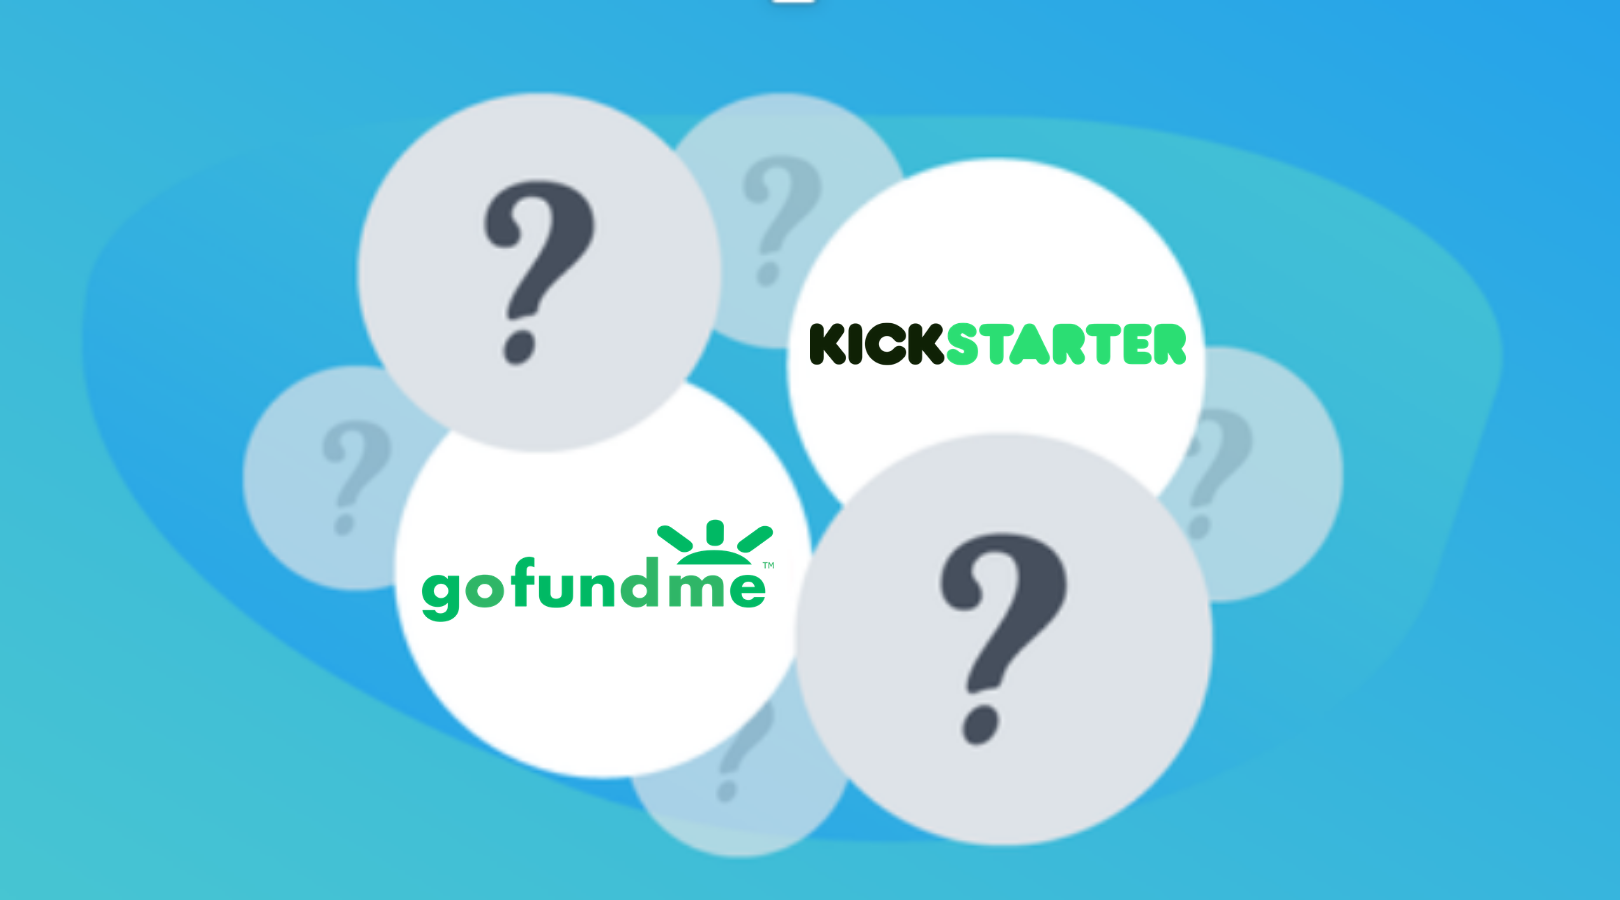 Kickstarter vs. GoFundMe: Which One Should You Use?